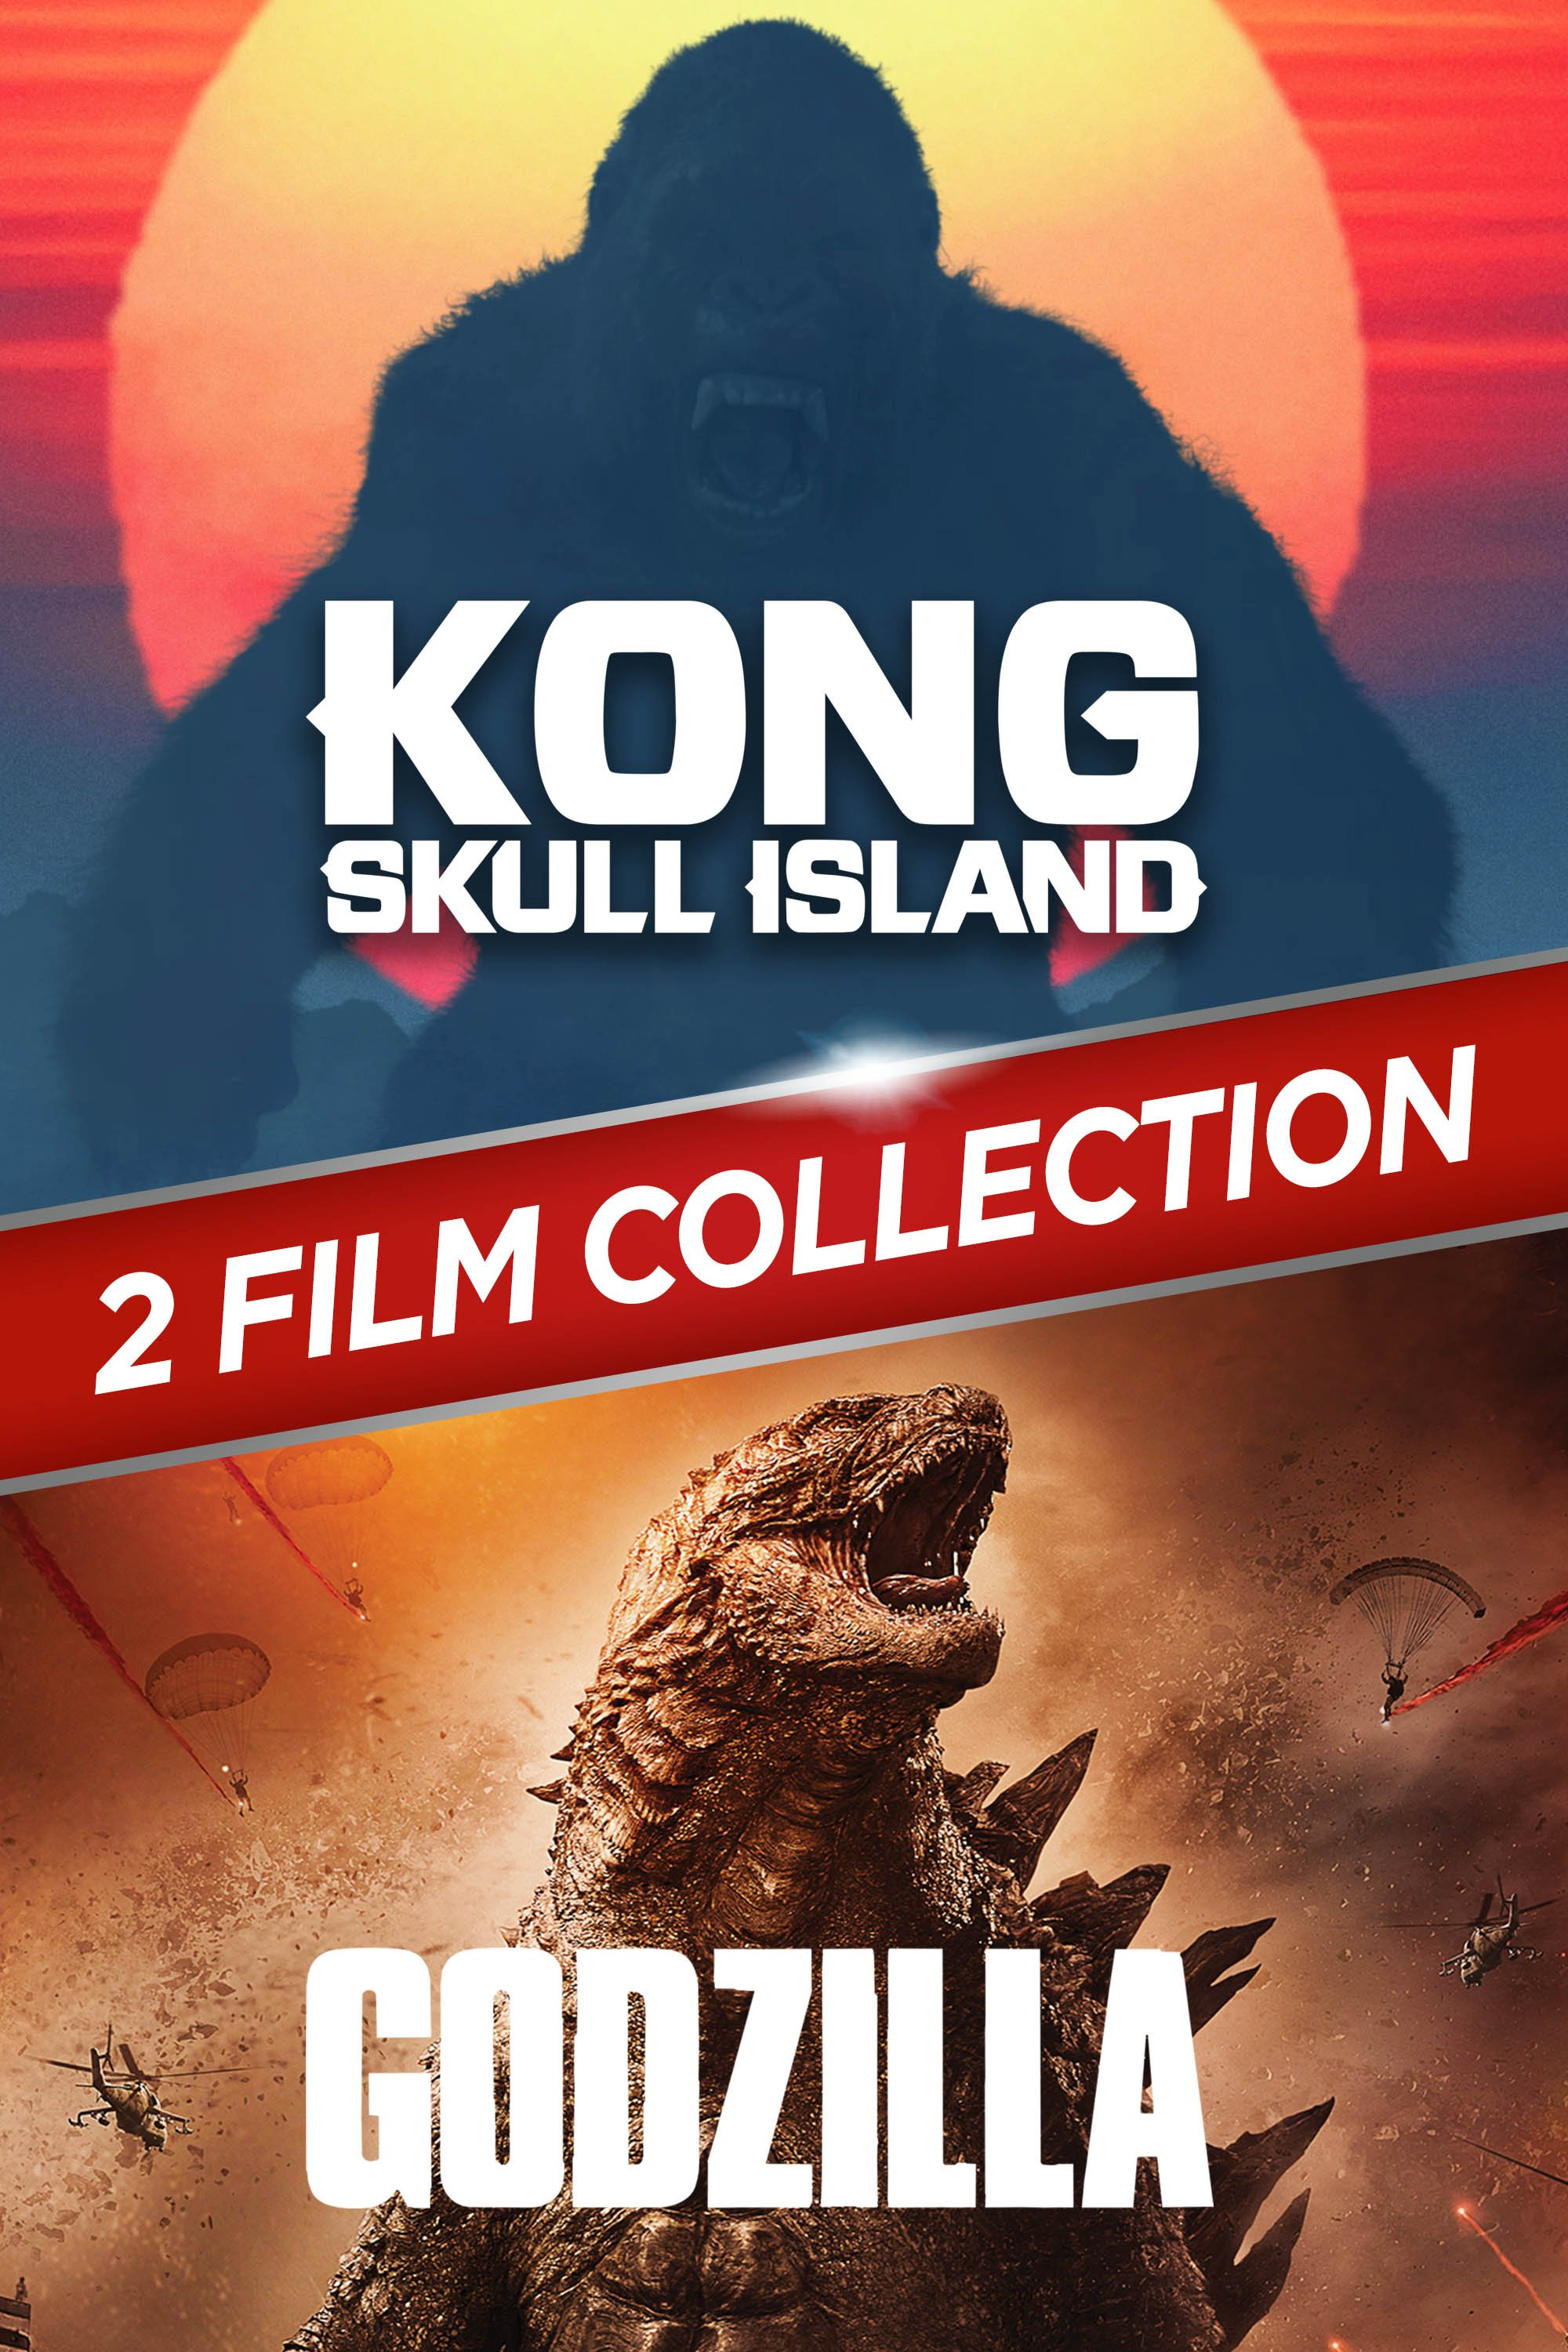 Kong: Skull Island + Godzilla 2-Film Collection